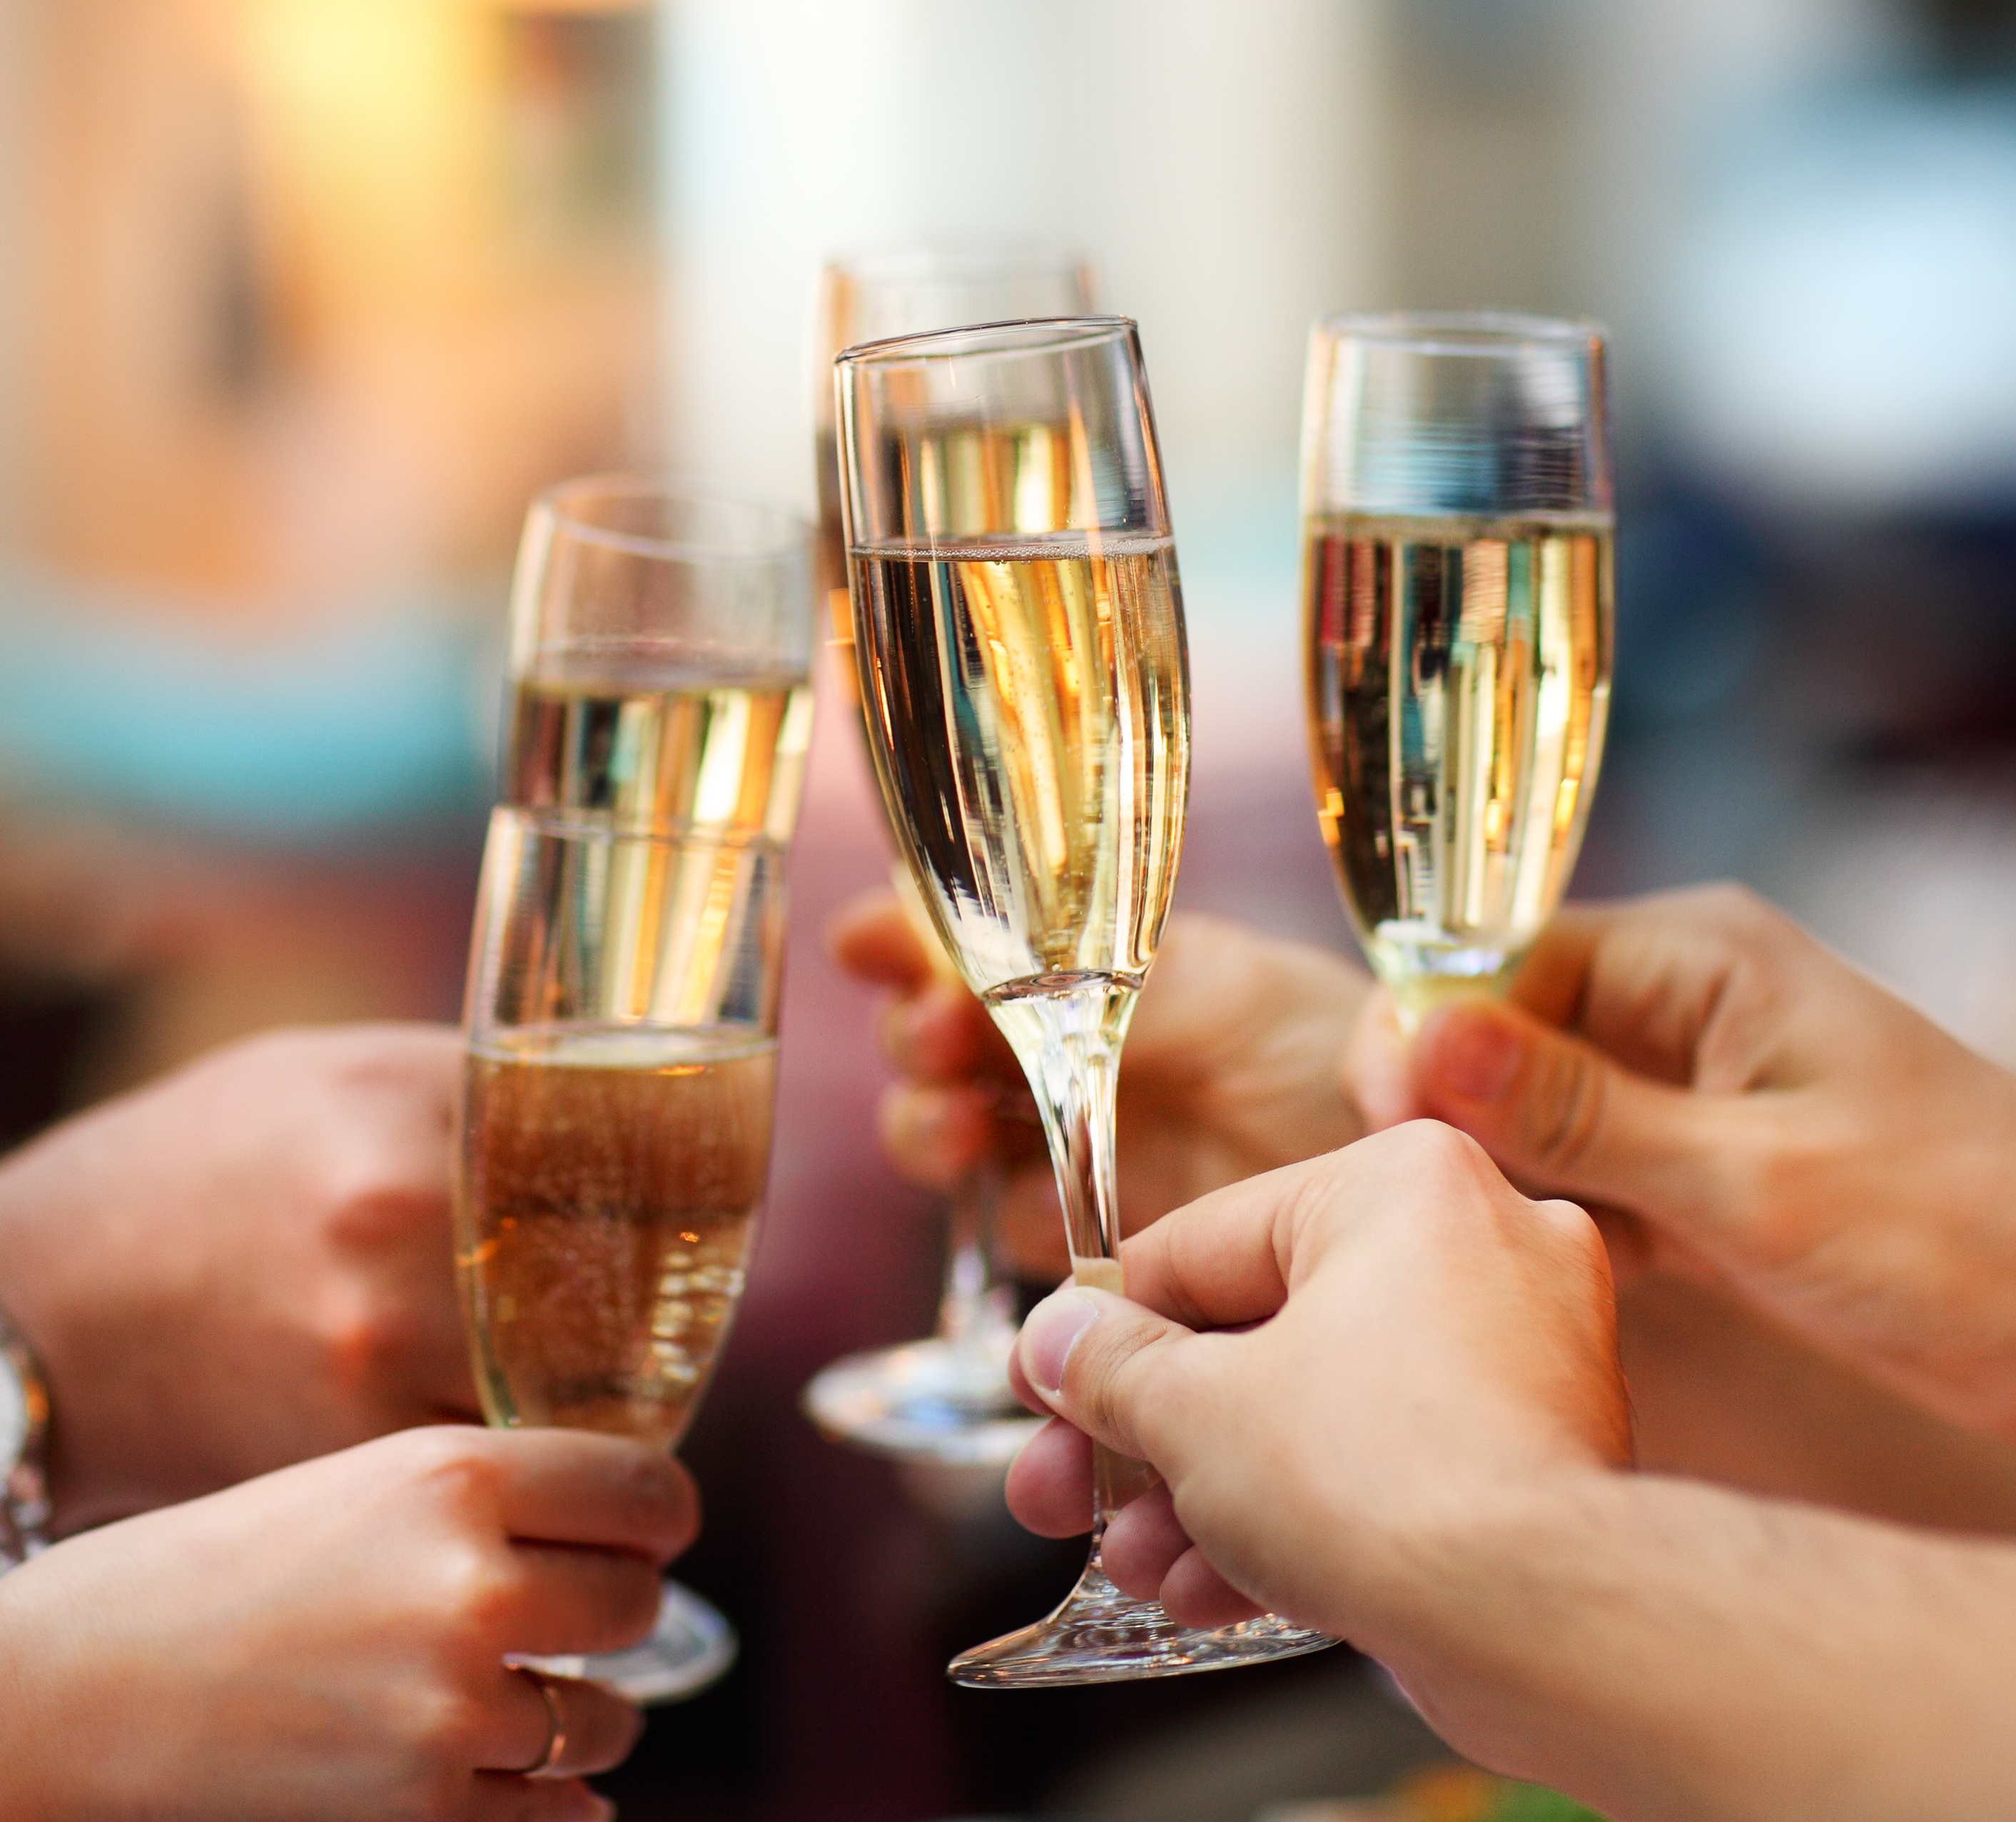 bride and bridesmaids toasting as part of wedding timeline